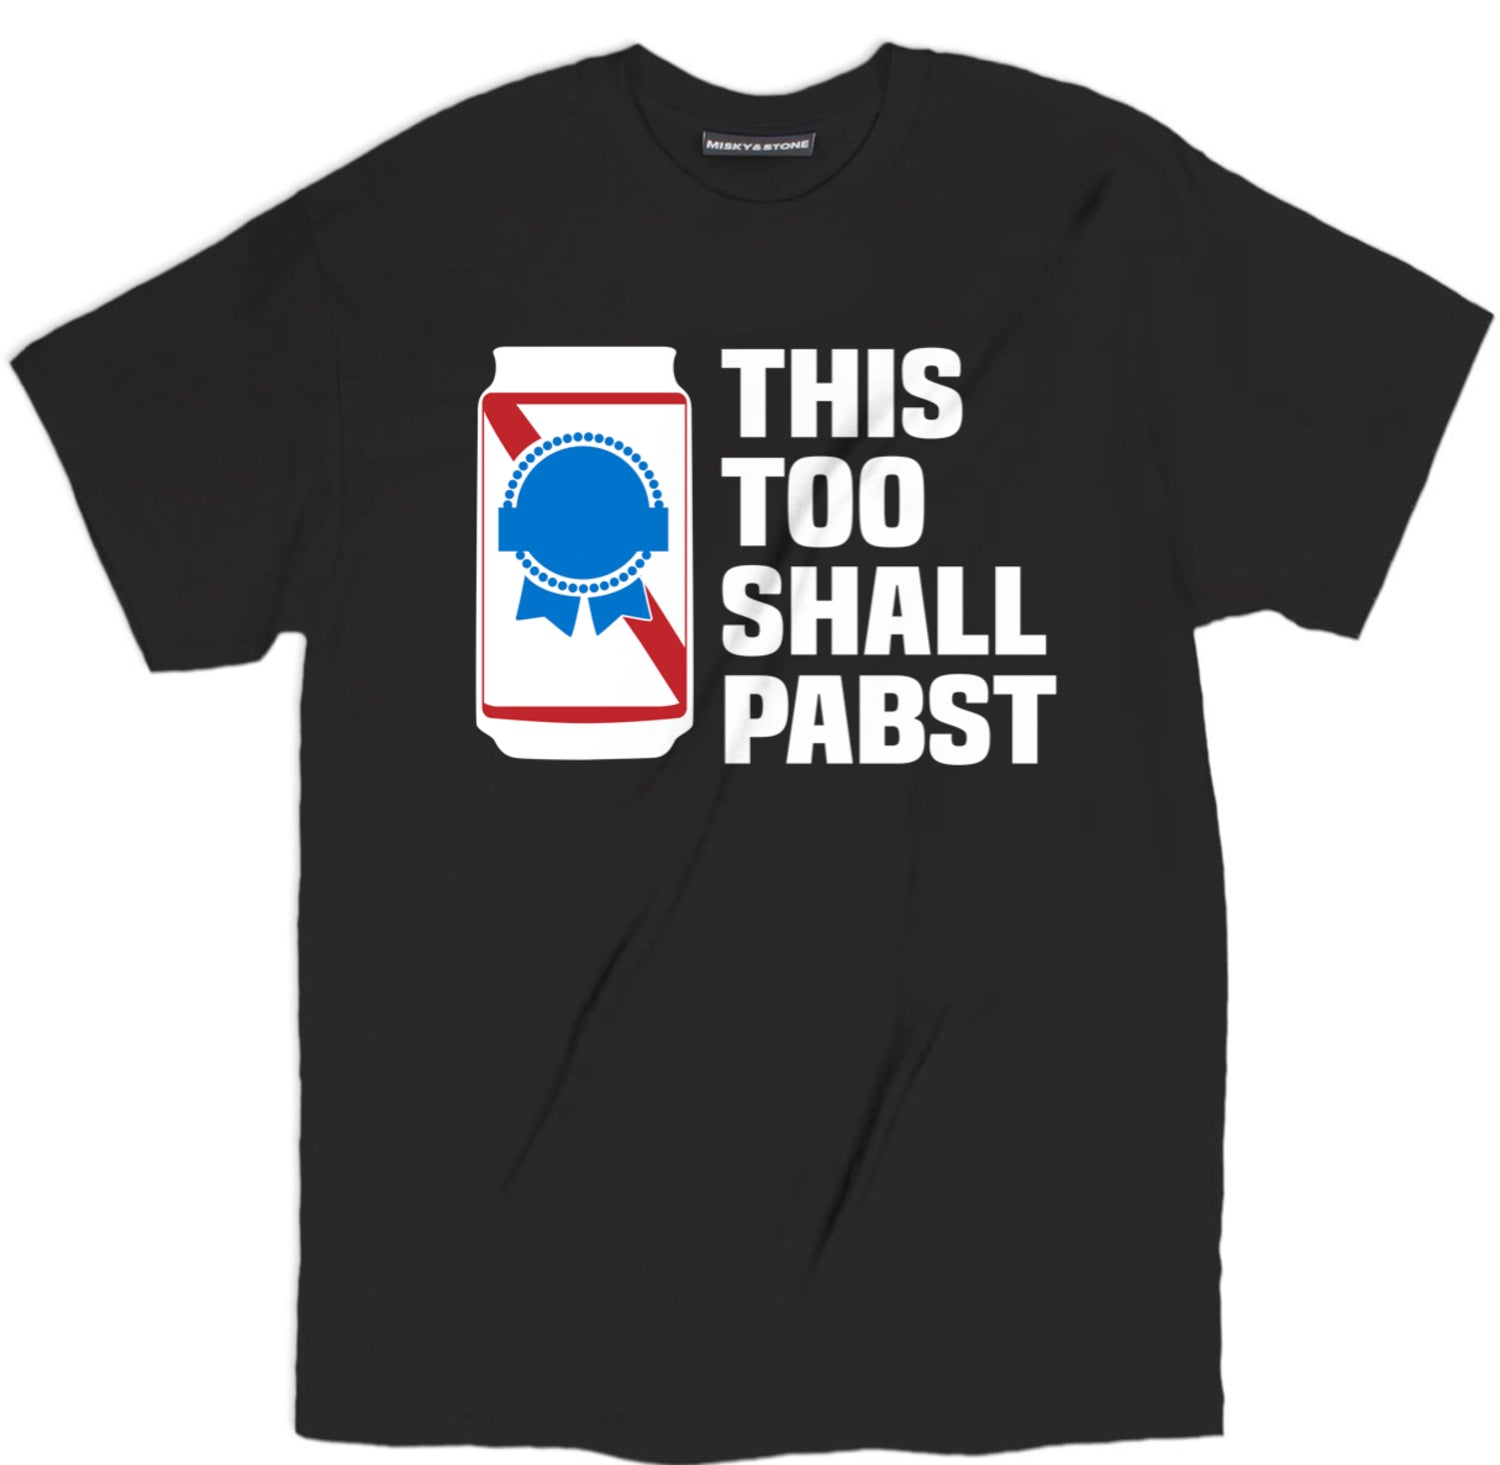 this too shall pabst t shirt, beer shirts, funny beer shirts, beer tees, beer tee shirts, funny beer t shirts, drinking shirts, alcohol shirts, funny drinking shirts,